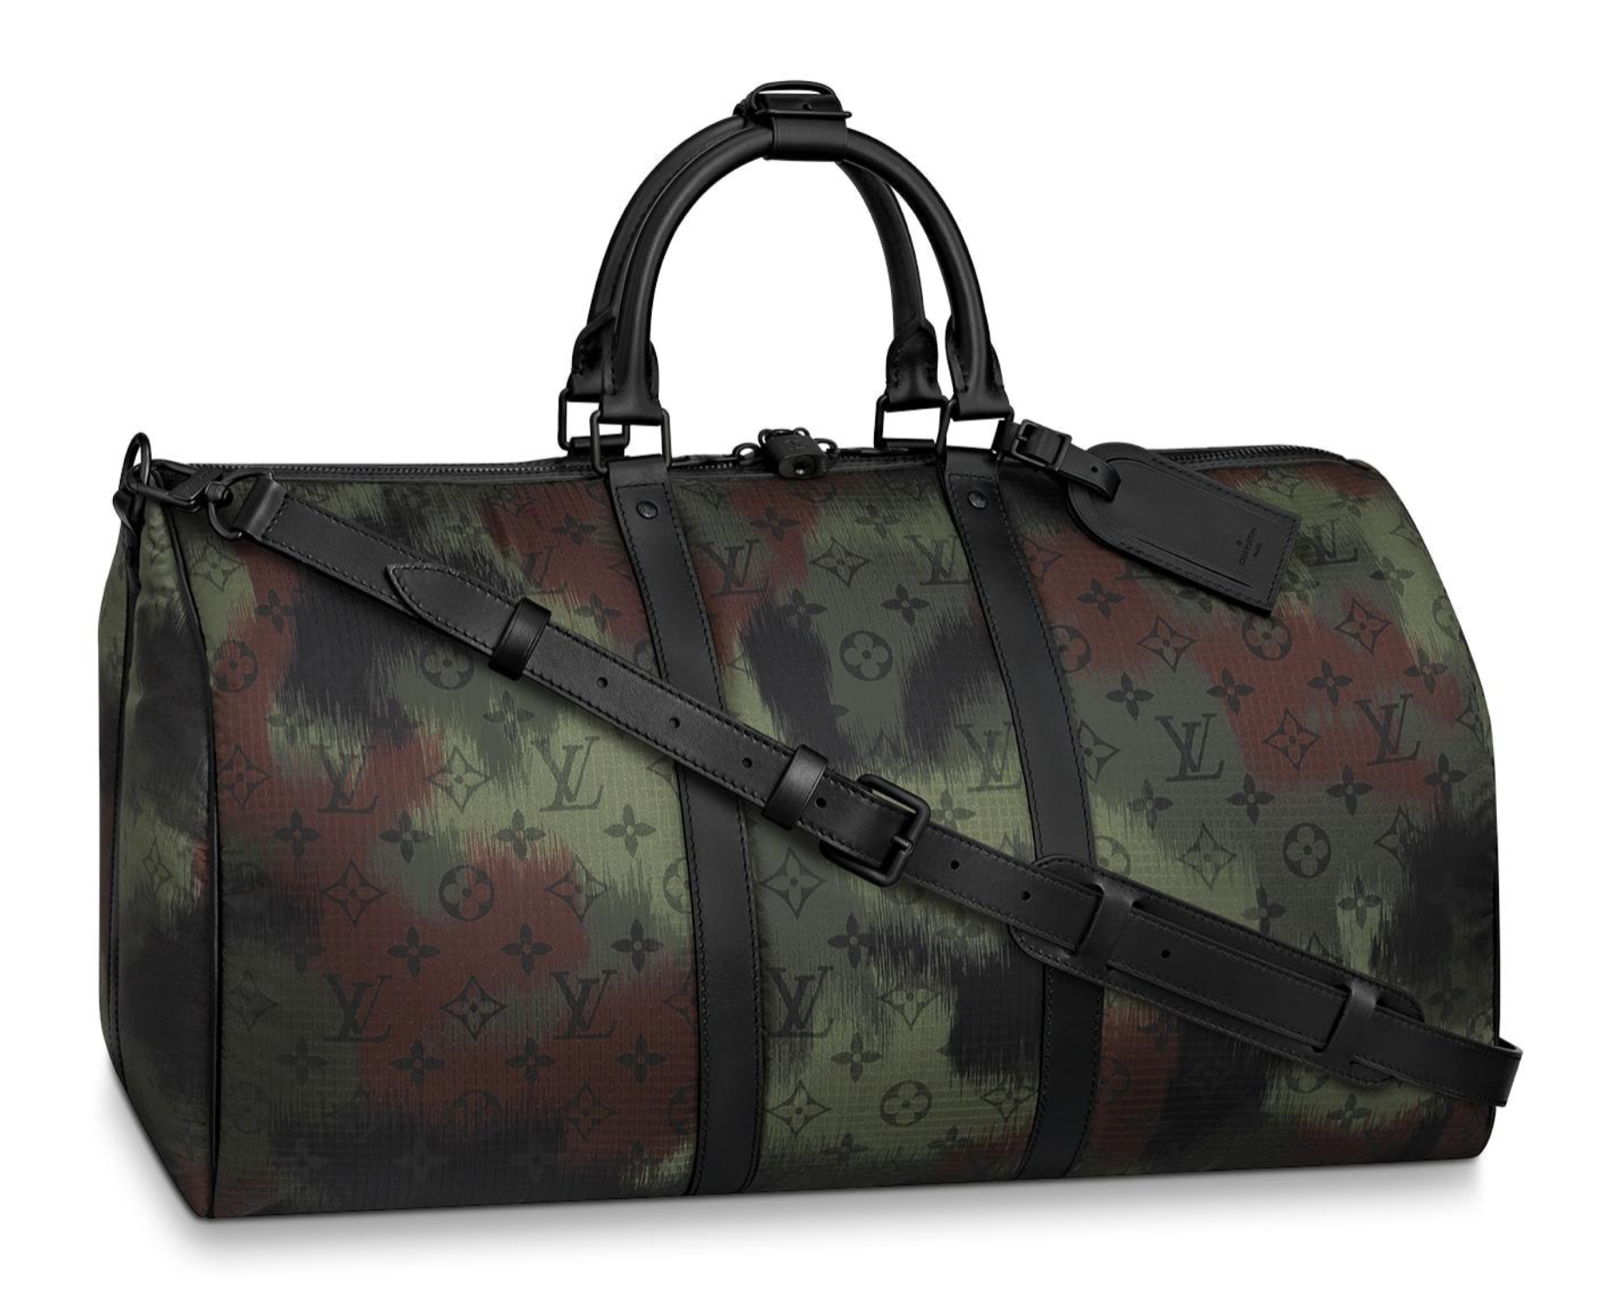 Louis Vuitton Keepall Bandouliere 50 Nylon Camouflage Camo Weekend Travel Bag